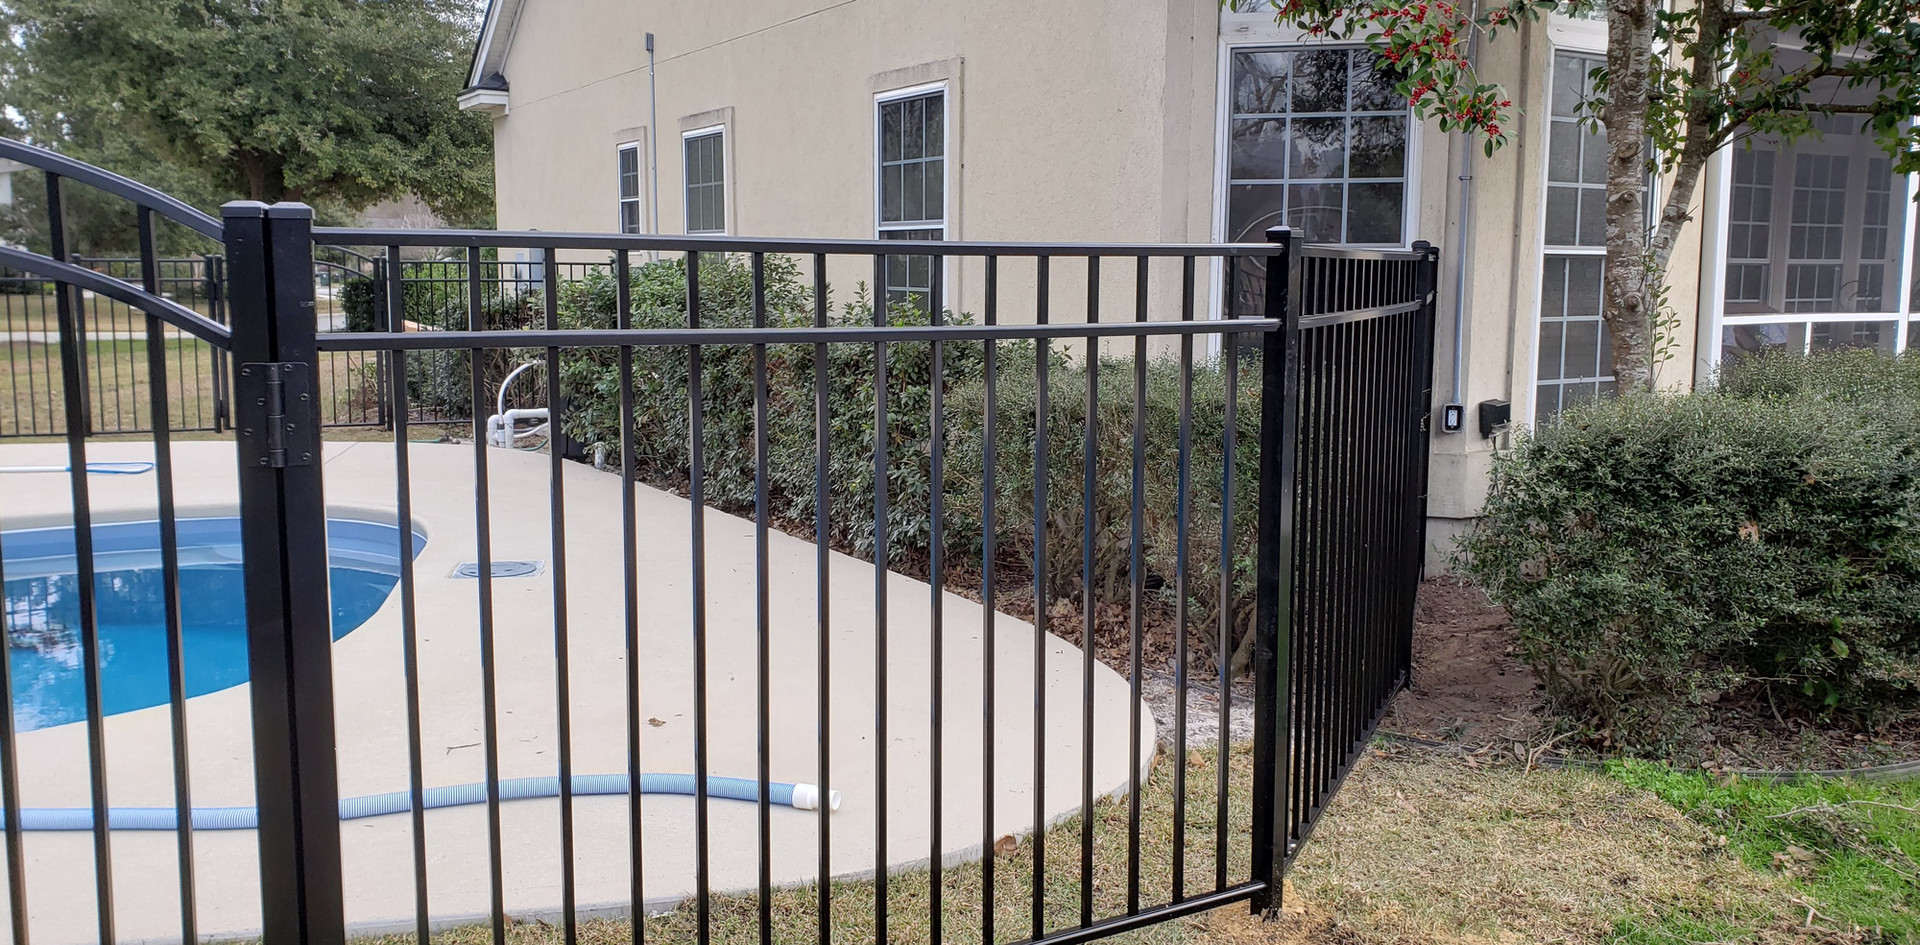 Rail fence with arch gate